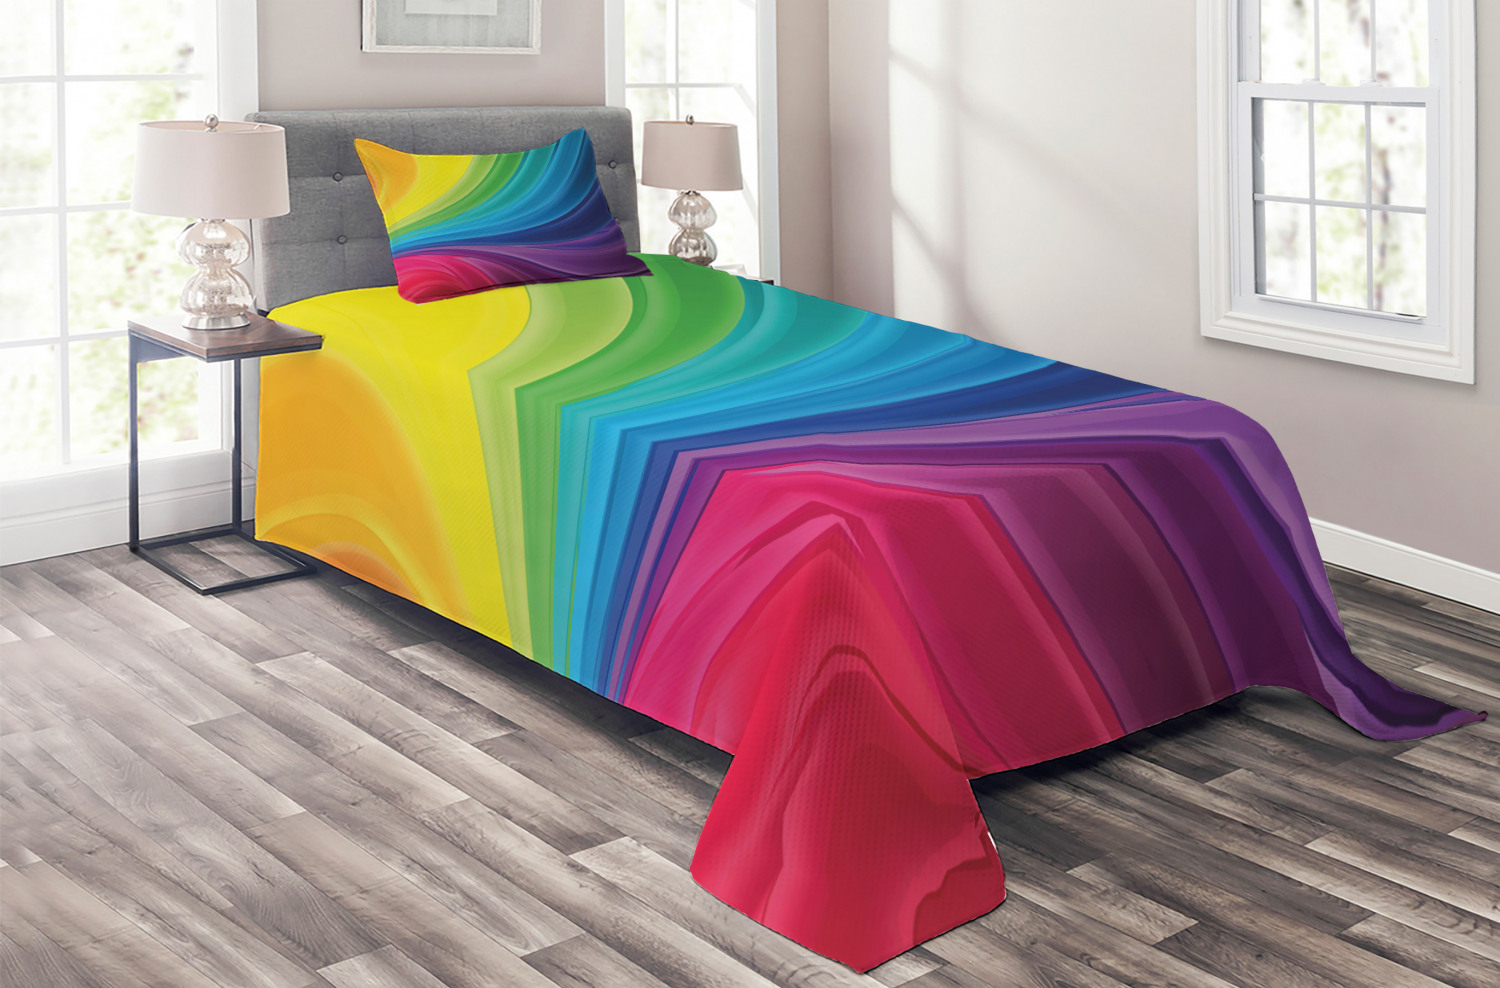 Colorful-Quilted-Coverlet-amp-Pillow-Shams-Set-Abstract-Smooth-Lines-Print thumbnail 2